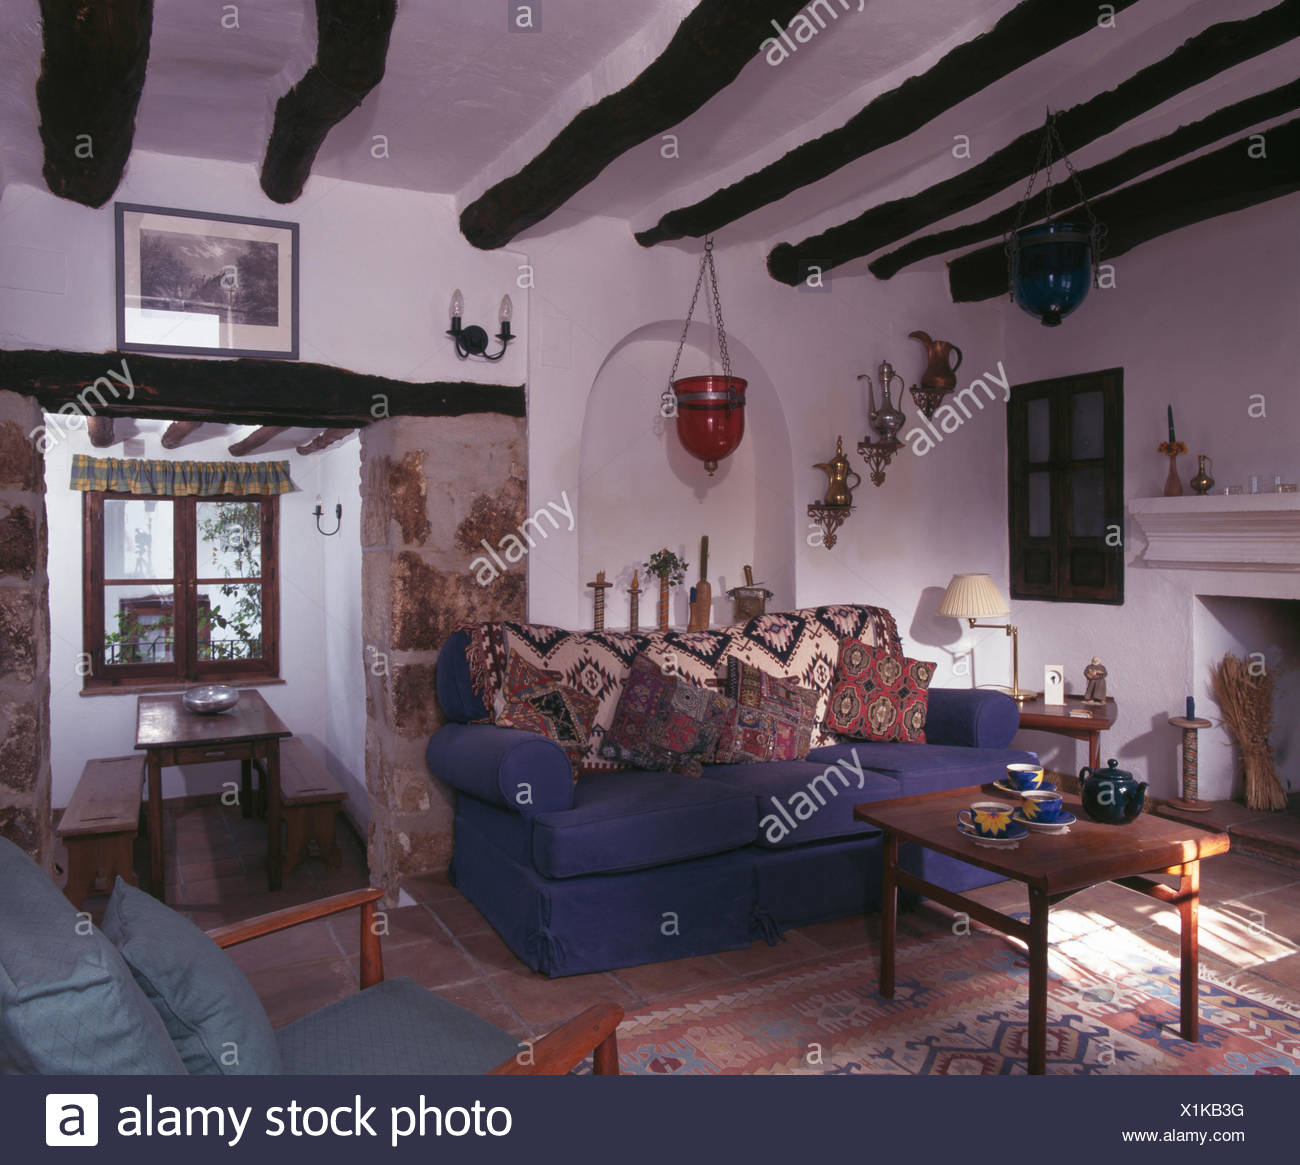 What Is Sofa In Spanish Patterned Cushions And Throw On Blue Sofa In Spanish Cottage